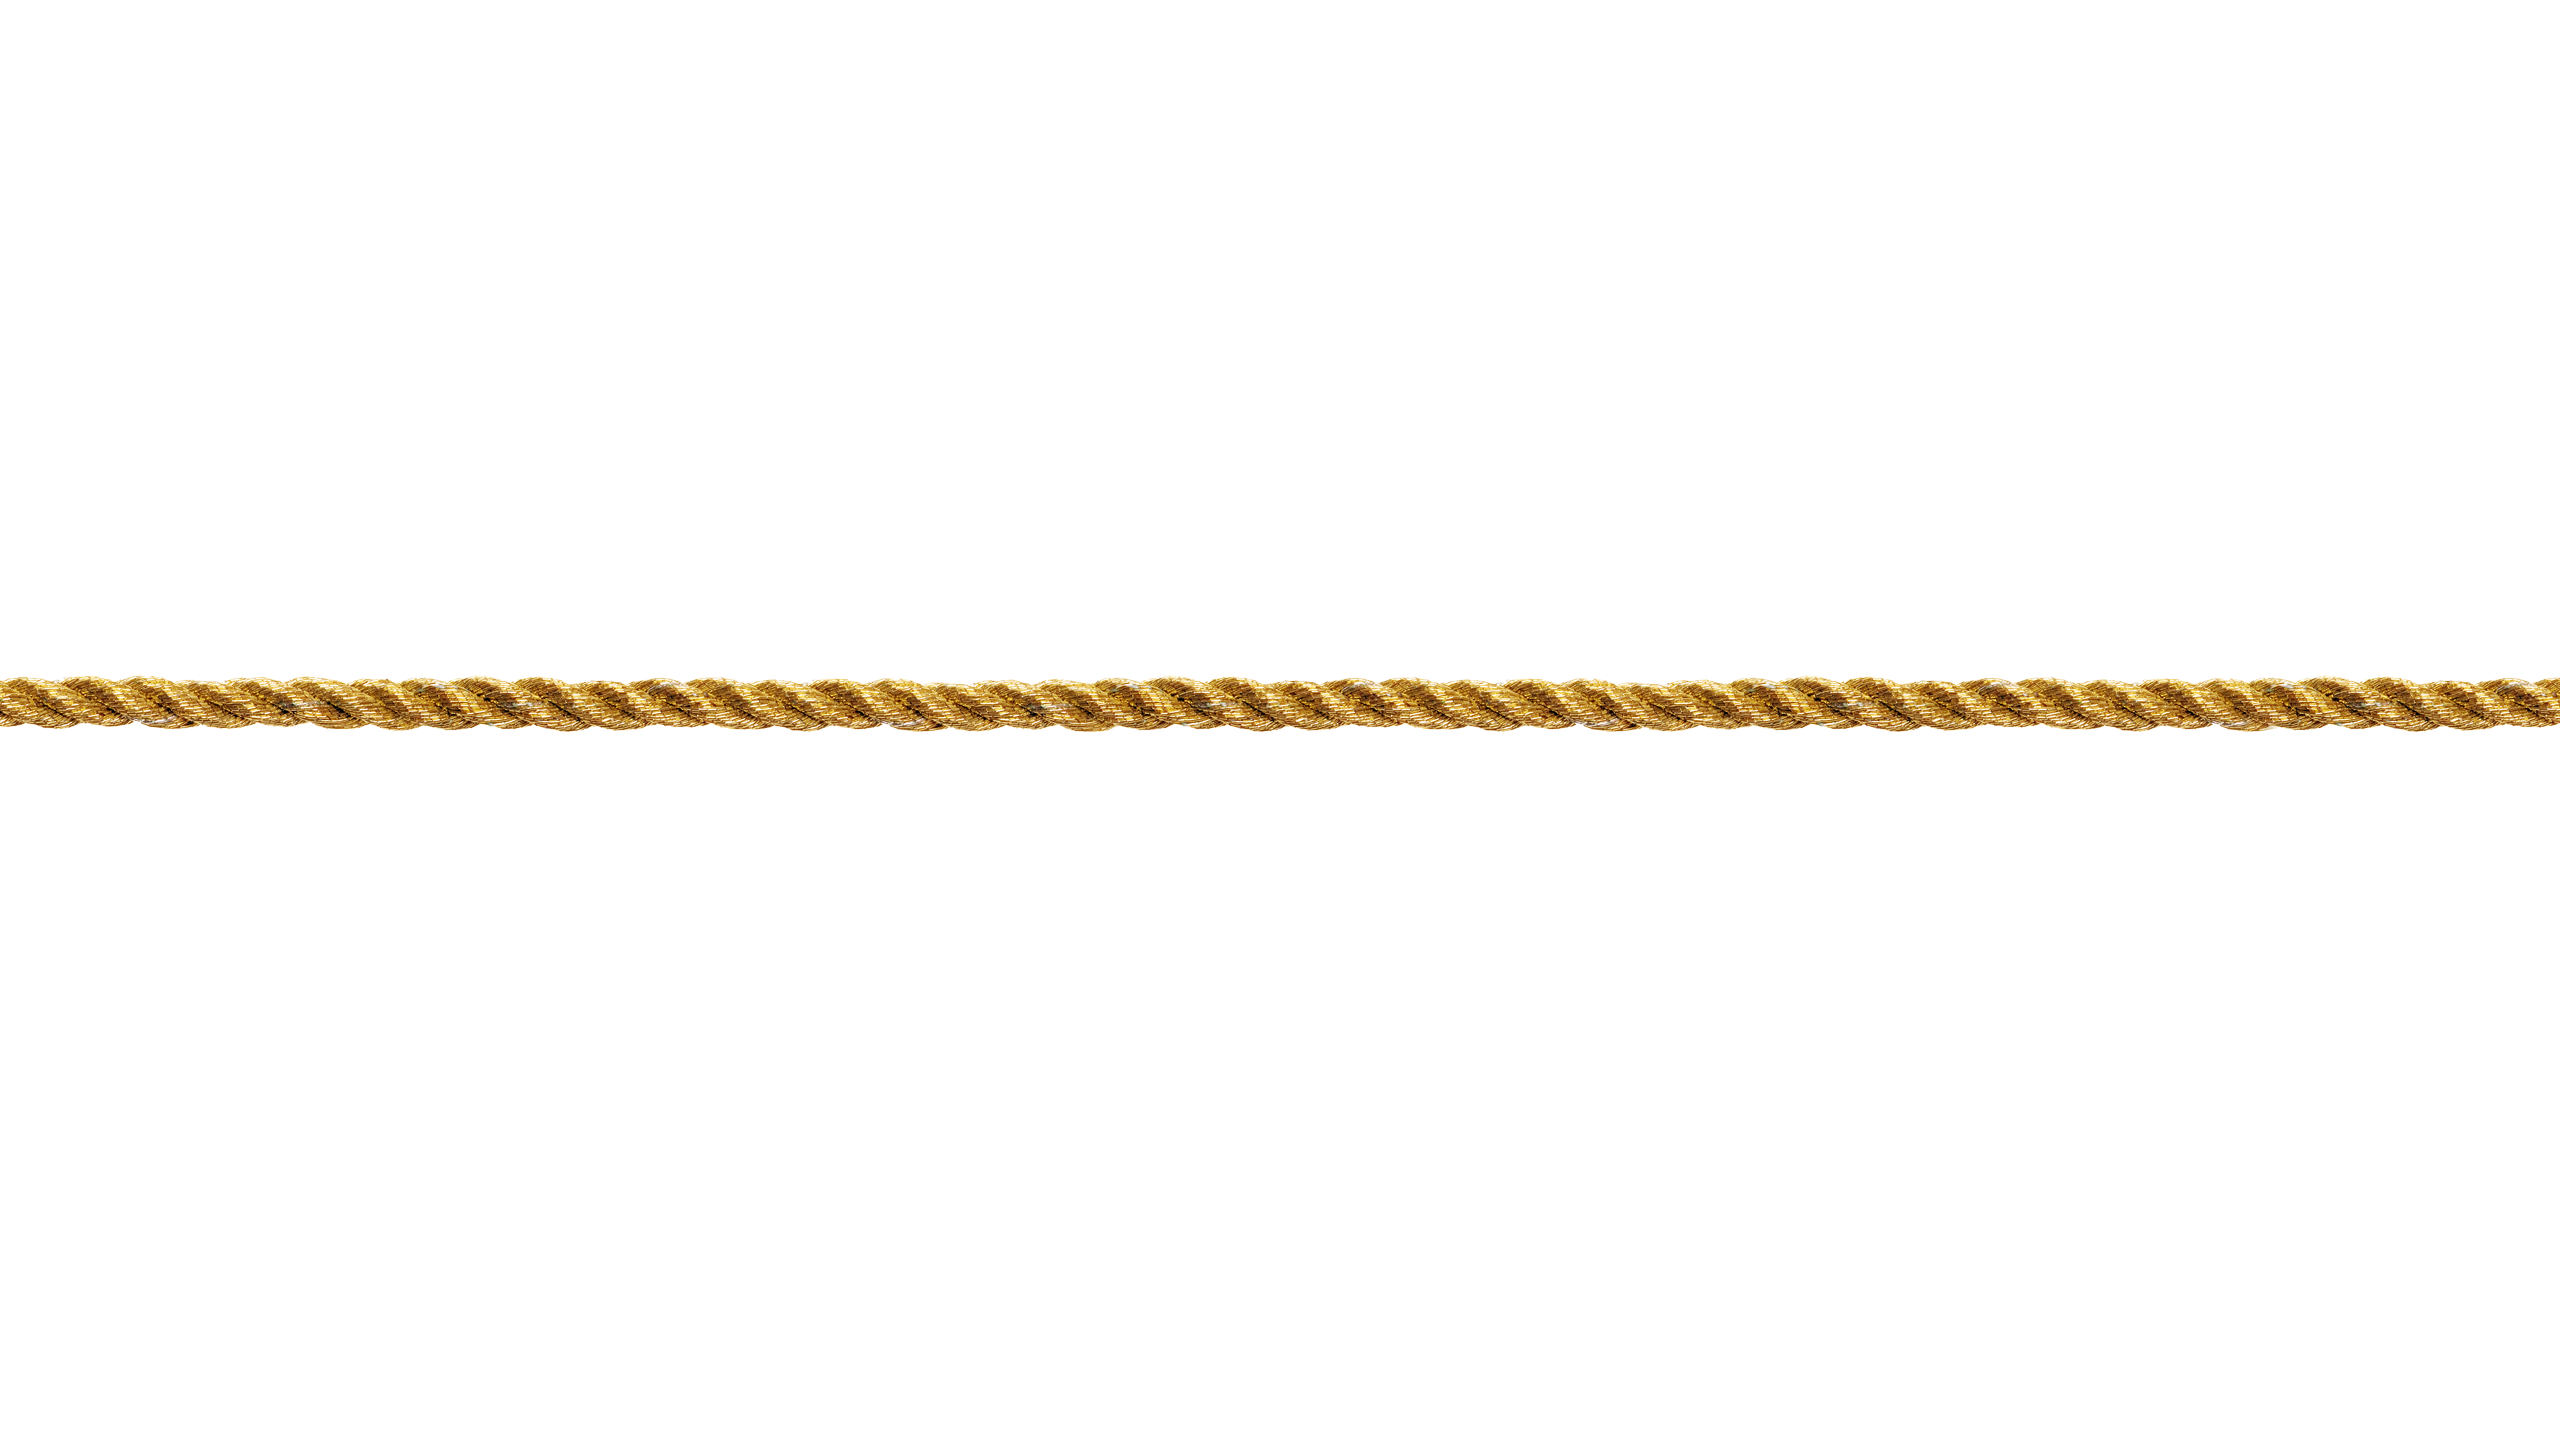 clipart royalty free download Rope Transparent PNG Image